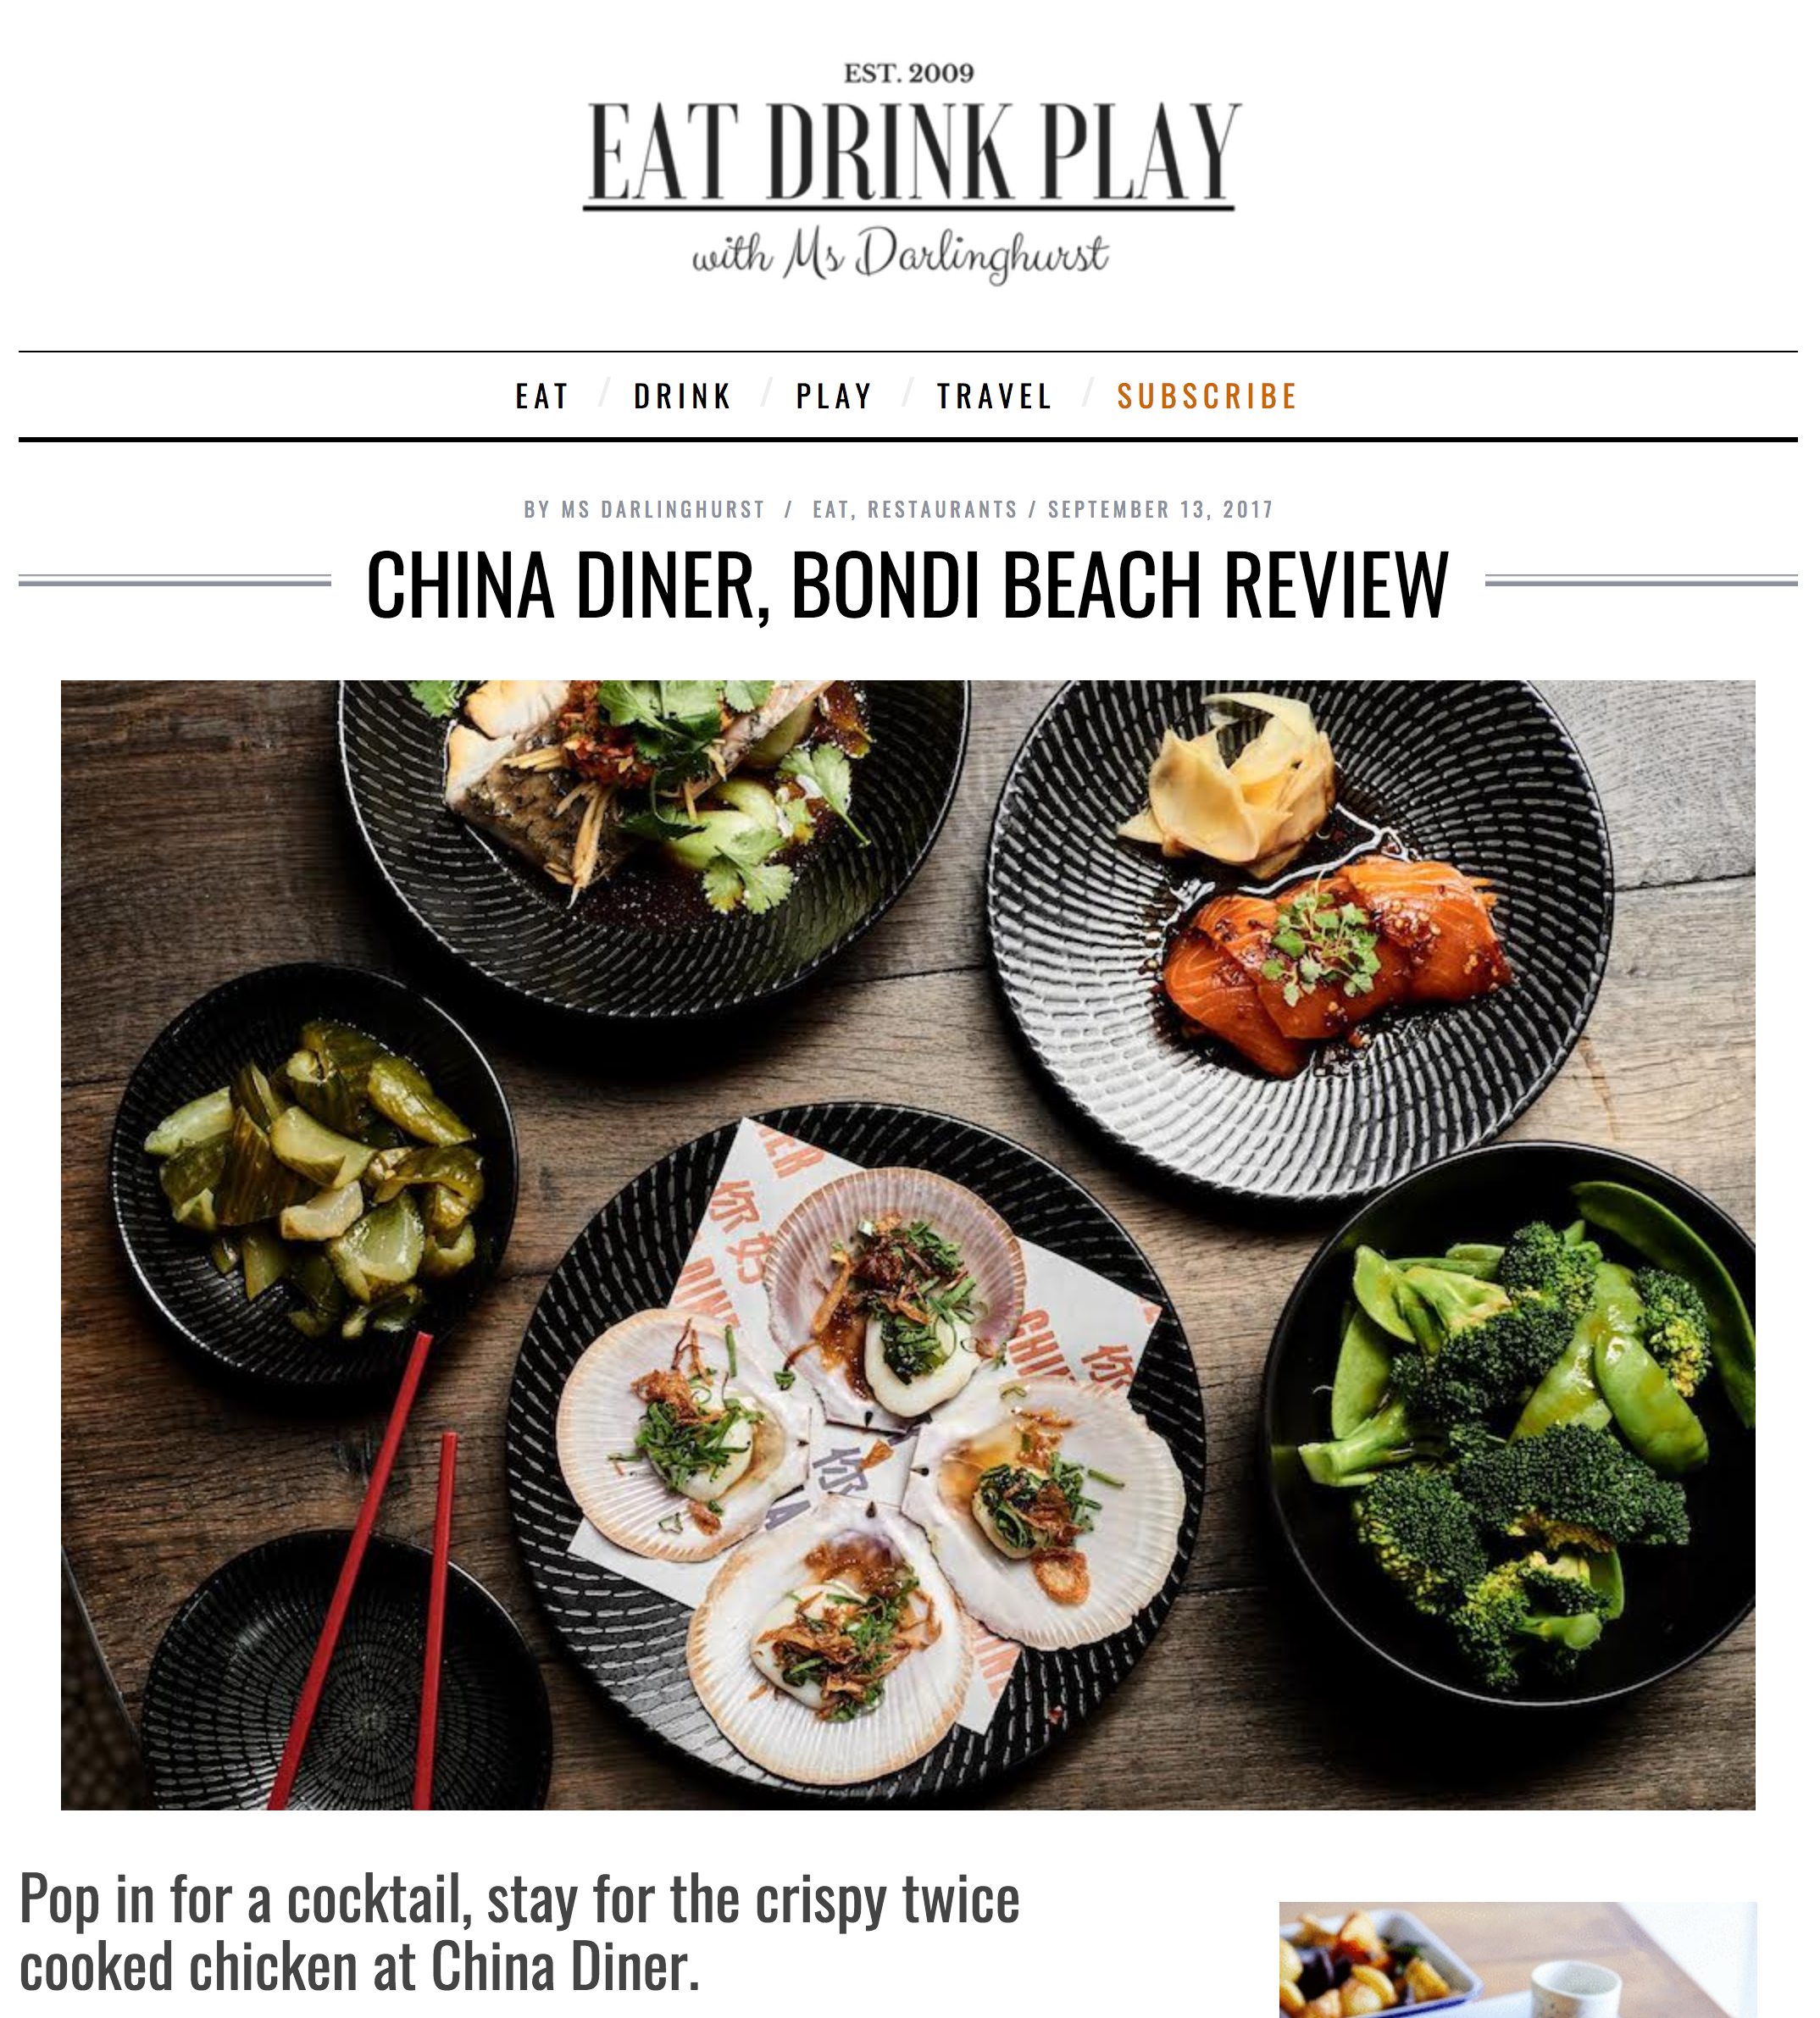 China_Diner,_Bondi_Beach_Review_-_Eat_Drink_Play_-_2018-04-06_12.30.32.jpg